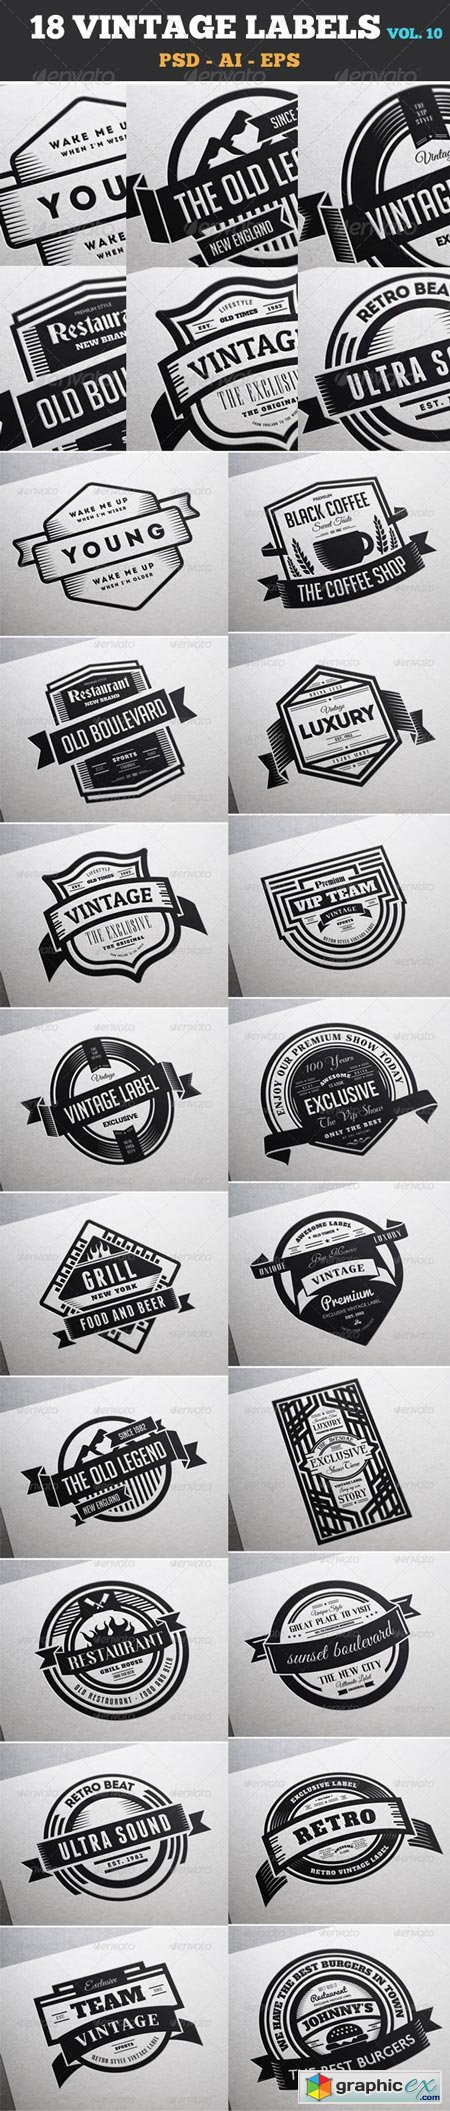 18 Vintage Labels & Badges Logos Insignias V10 7292169